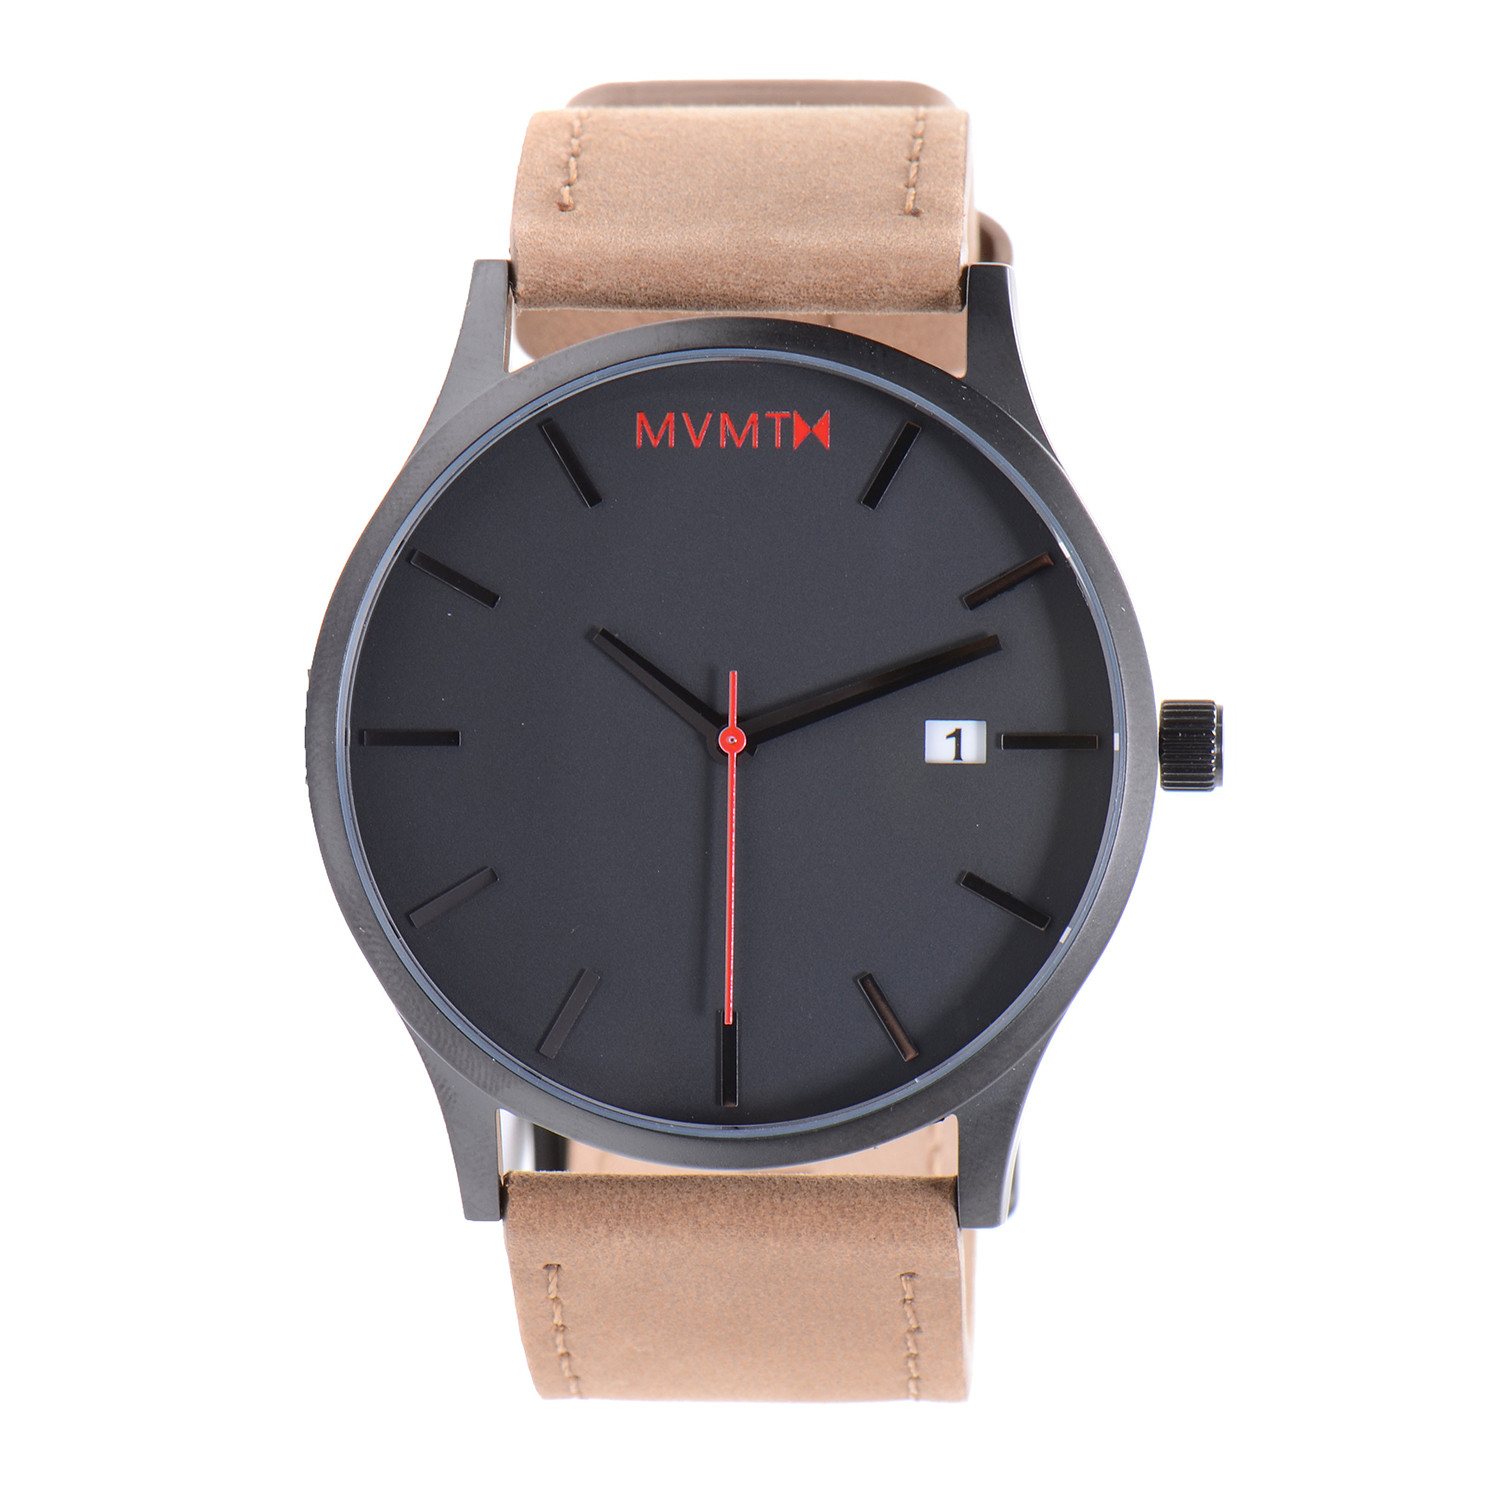 Simplicity is beauty 15 beautiful watches for minimalists inspirationfeed for Black tan watch